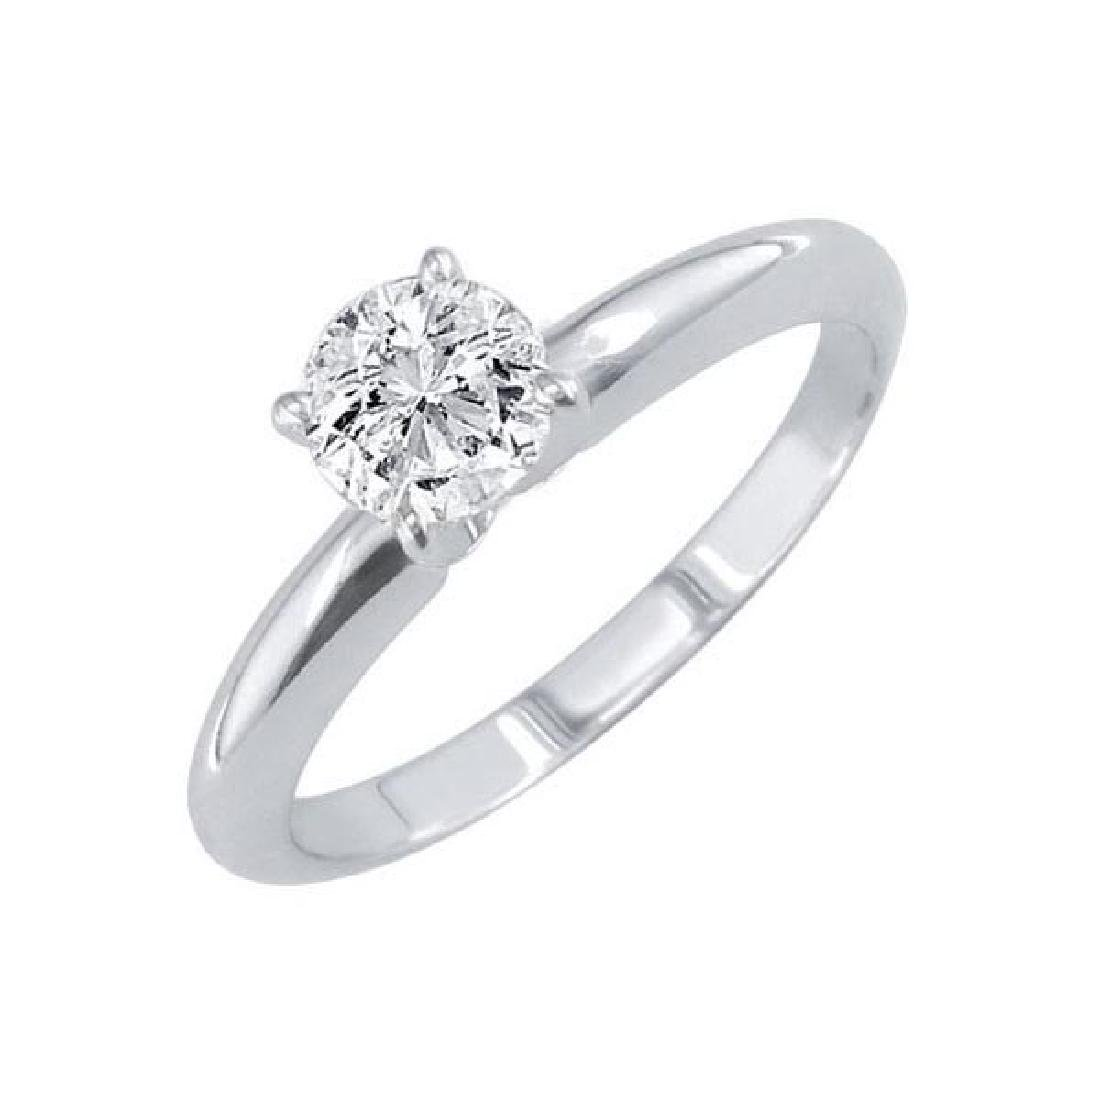 Certified 0.68 CTW Round Diamond Solitaire 14k Ring D/S